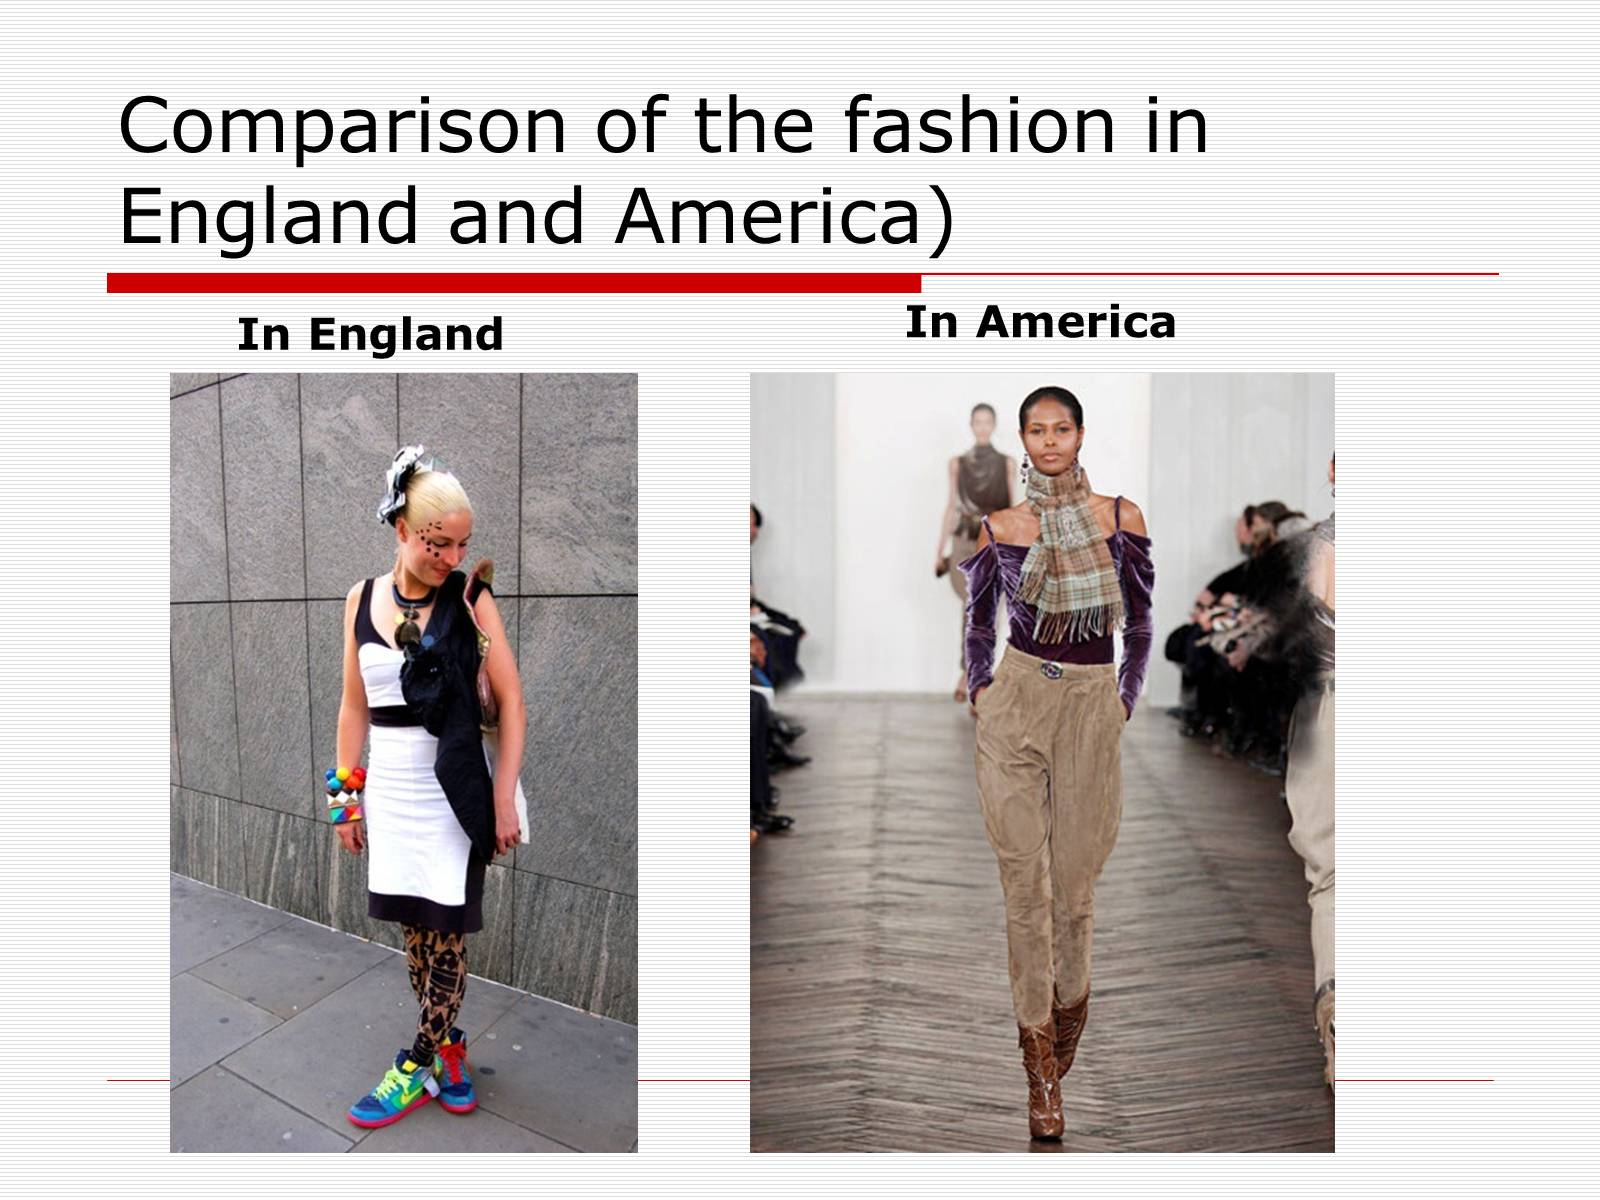 Презентація на тему «Comparison of the fashion in England and America» - Слайд #22